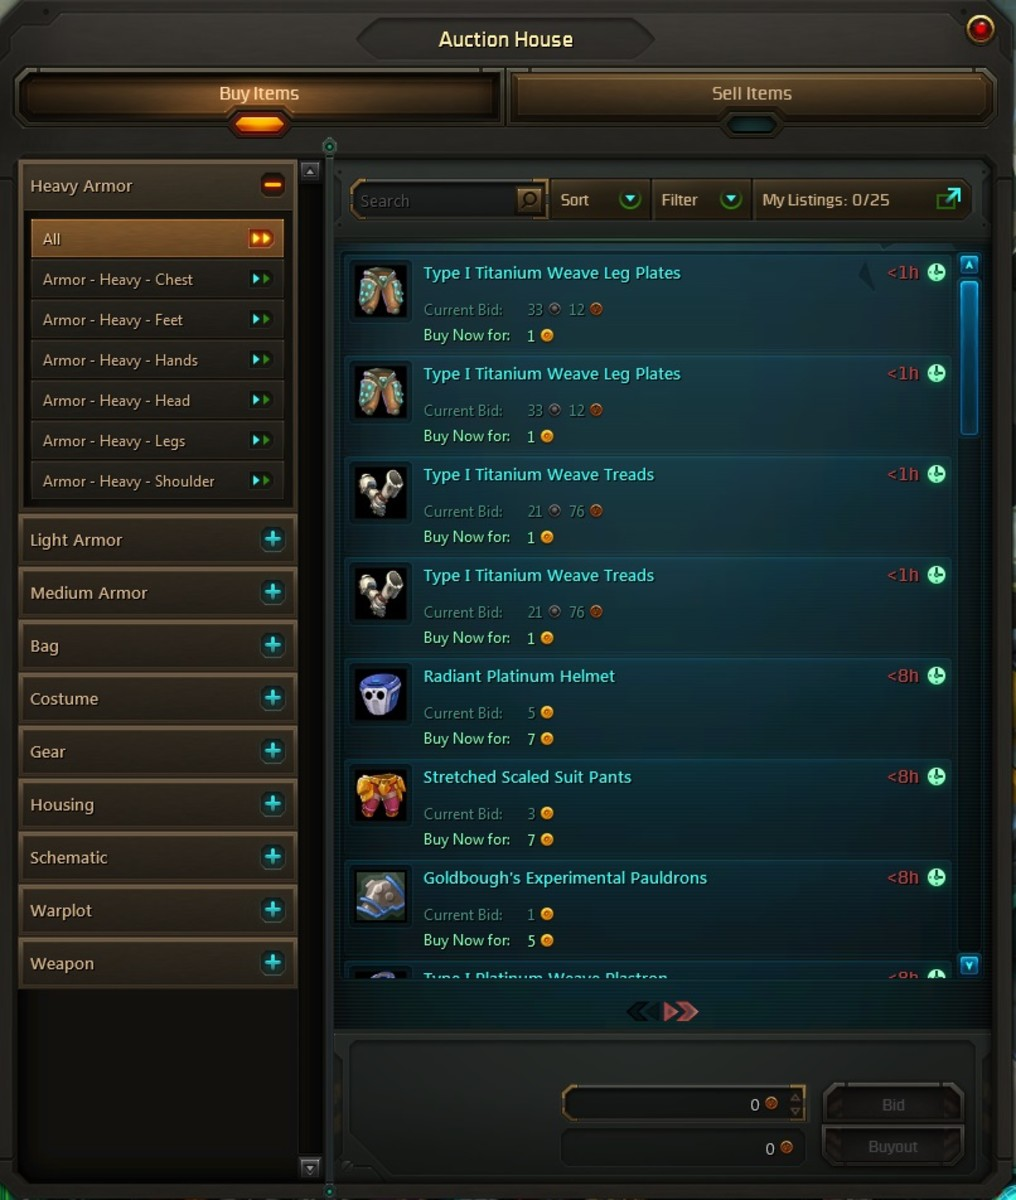 The Wildstar Auction House allows you to sell weapons, armor, and decor items.